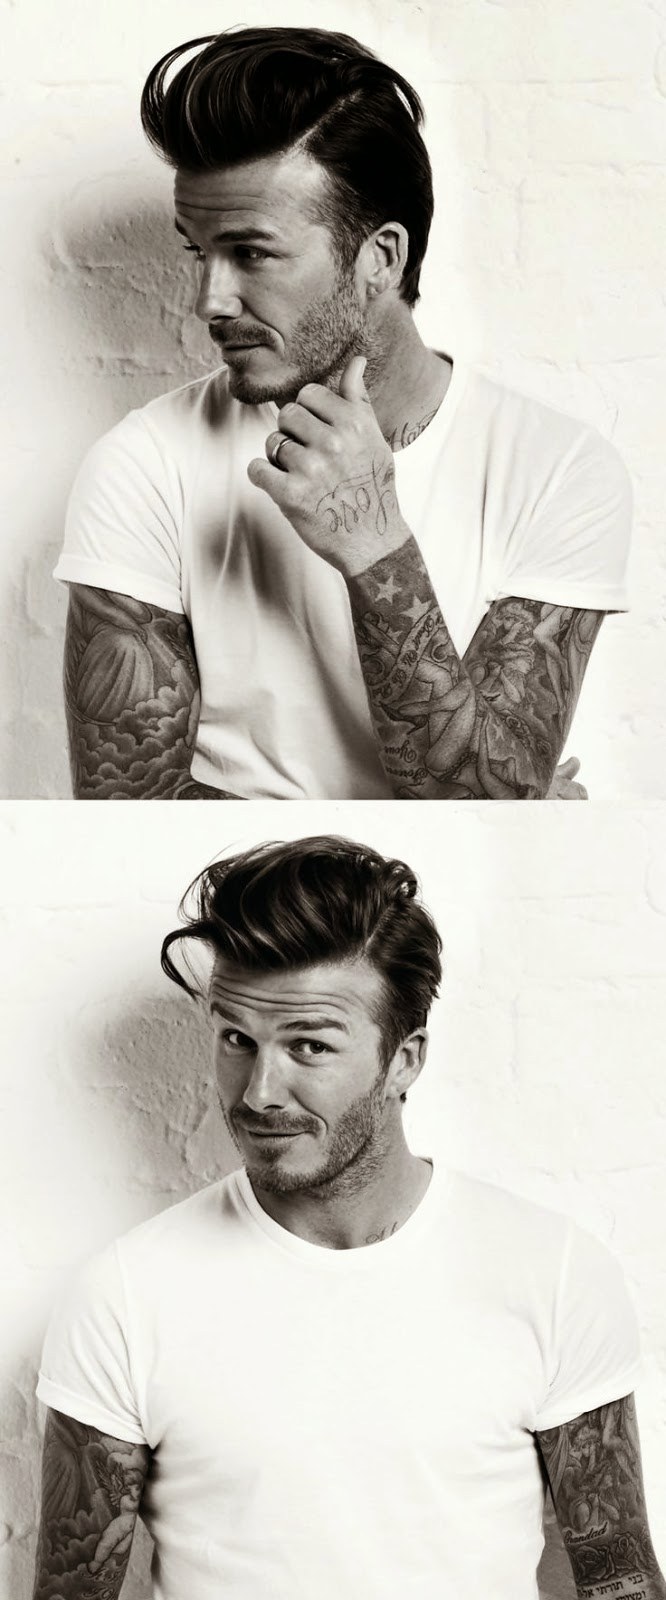 ♥ ♫ ♥  David Beckham tattoo ♥ ♫ ♥